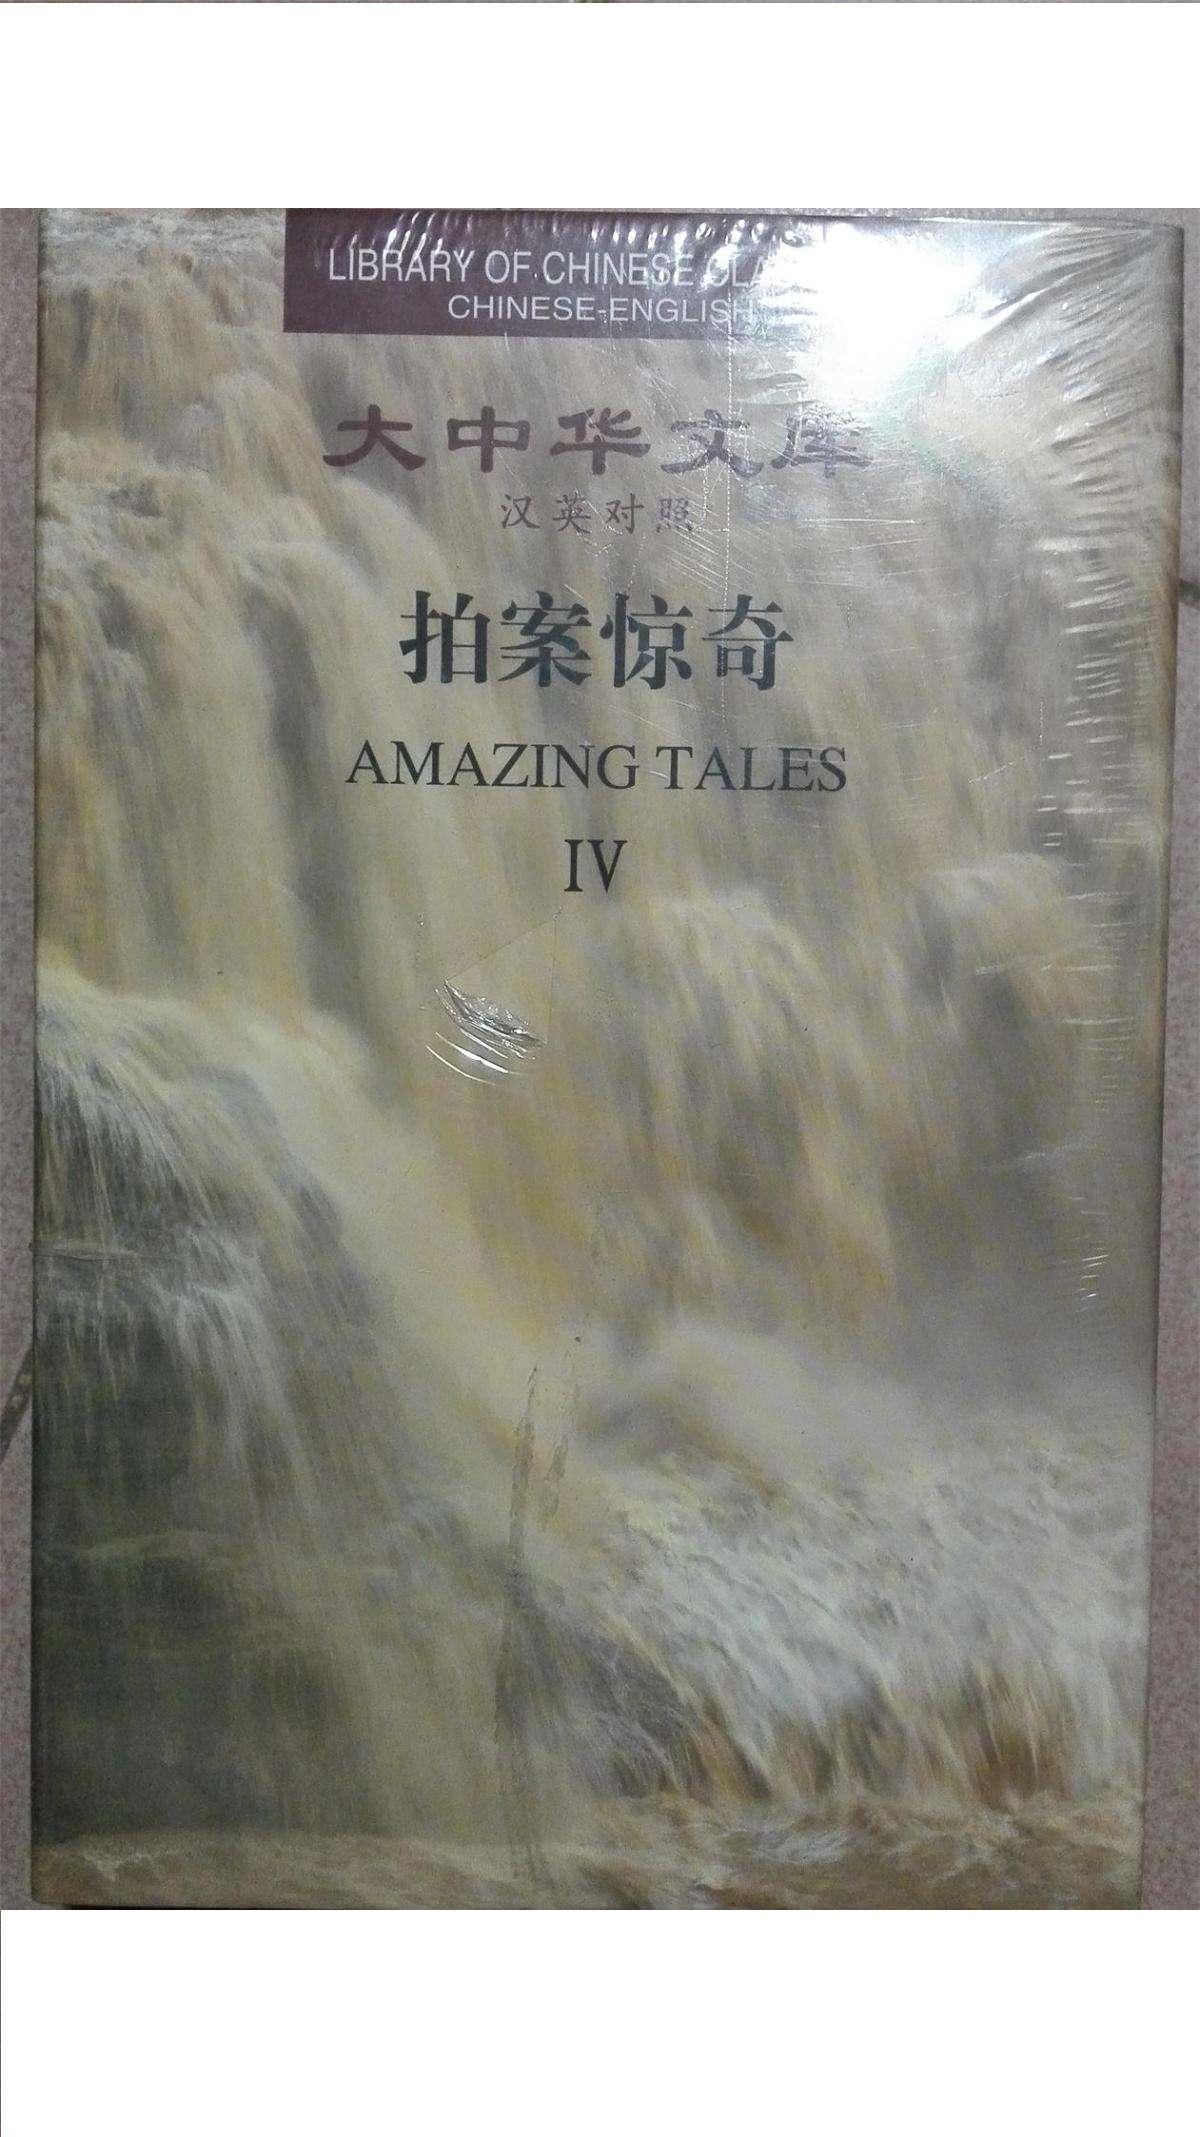 Library of Chinese Classics: Amazing Tales